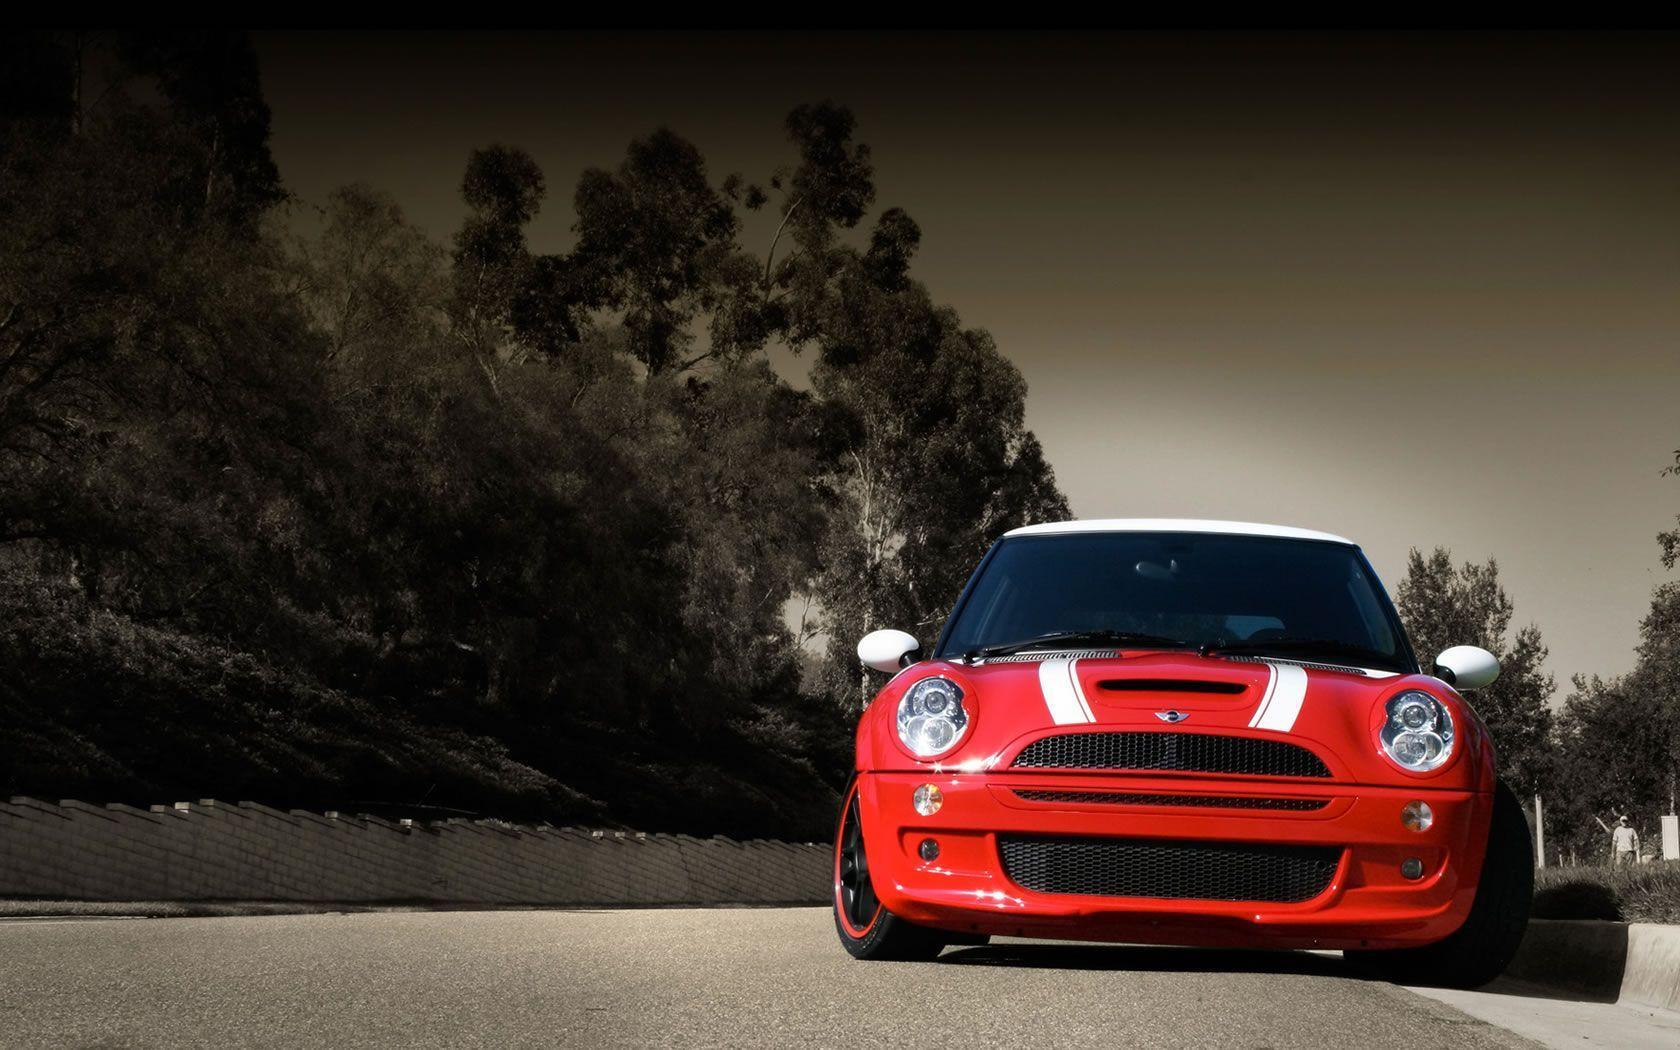 Mini Cooper Wallpapers Free Download 18719 Full HD Wallpapers